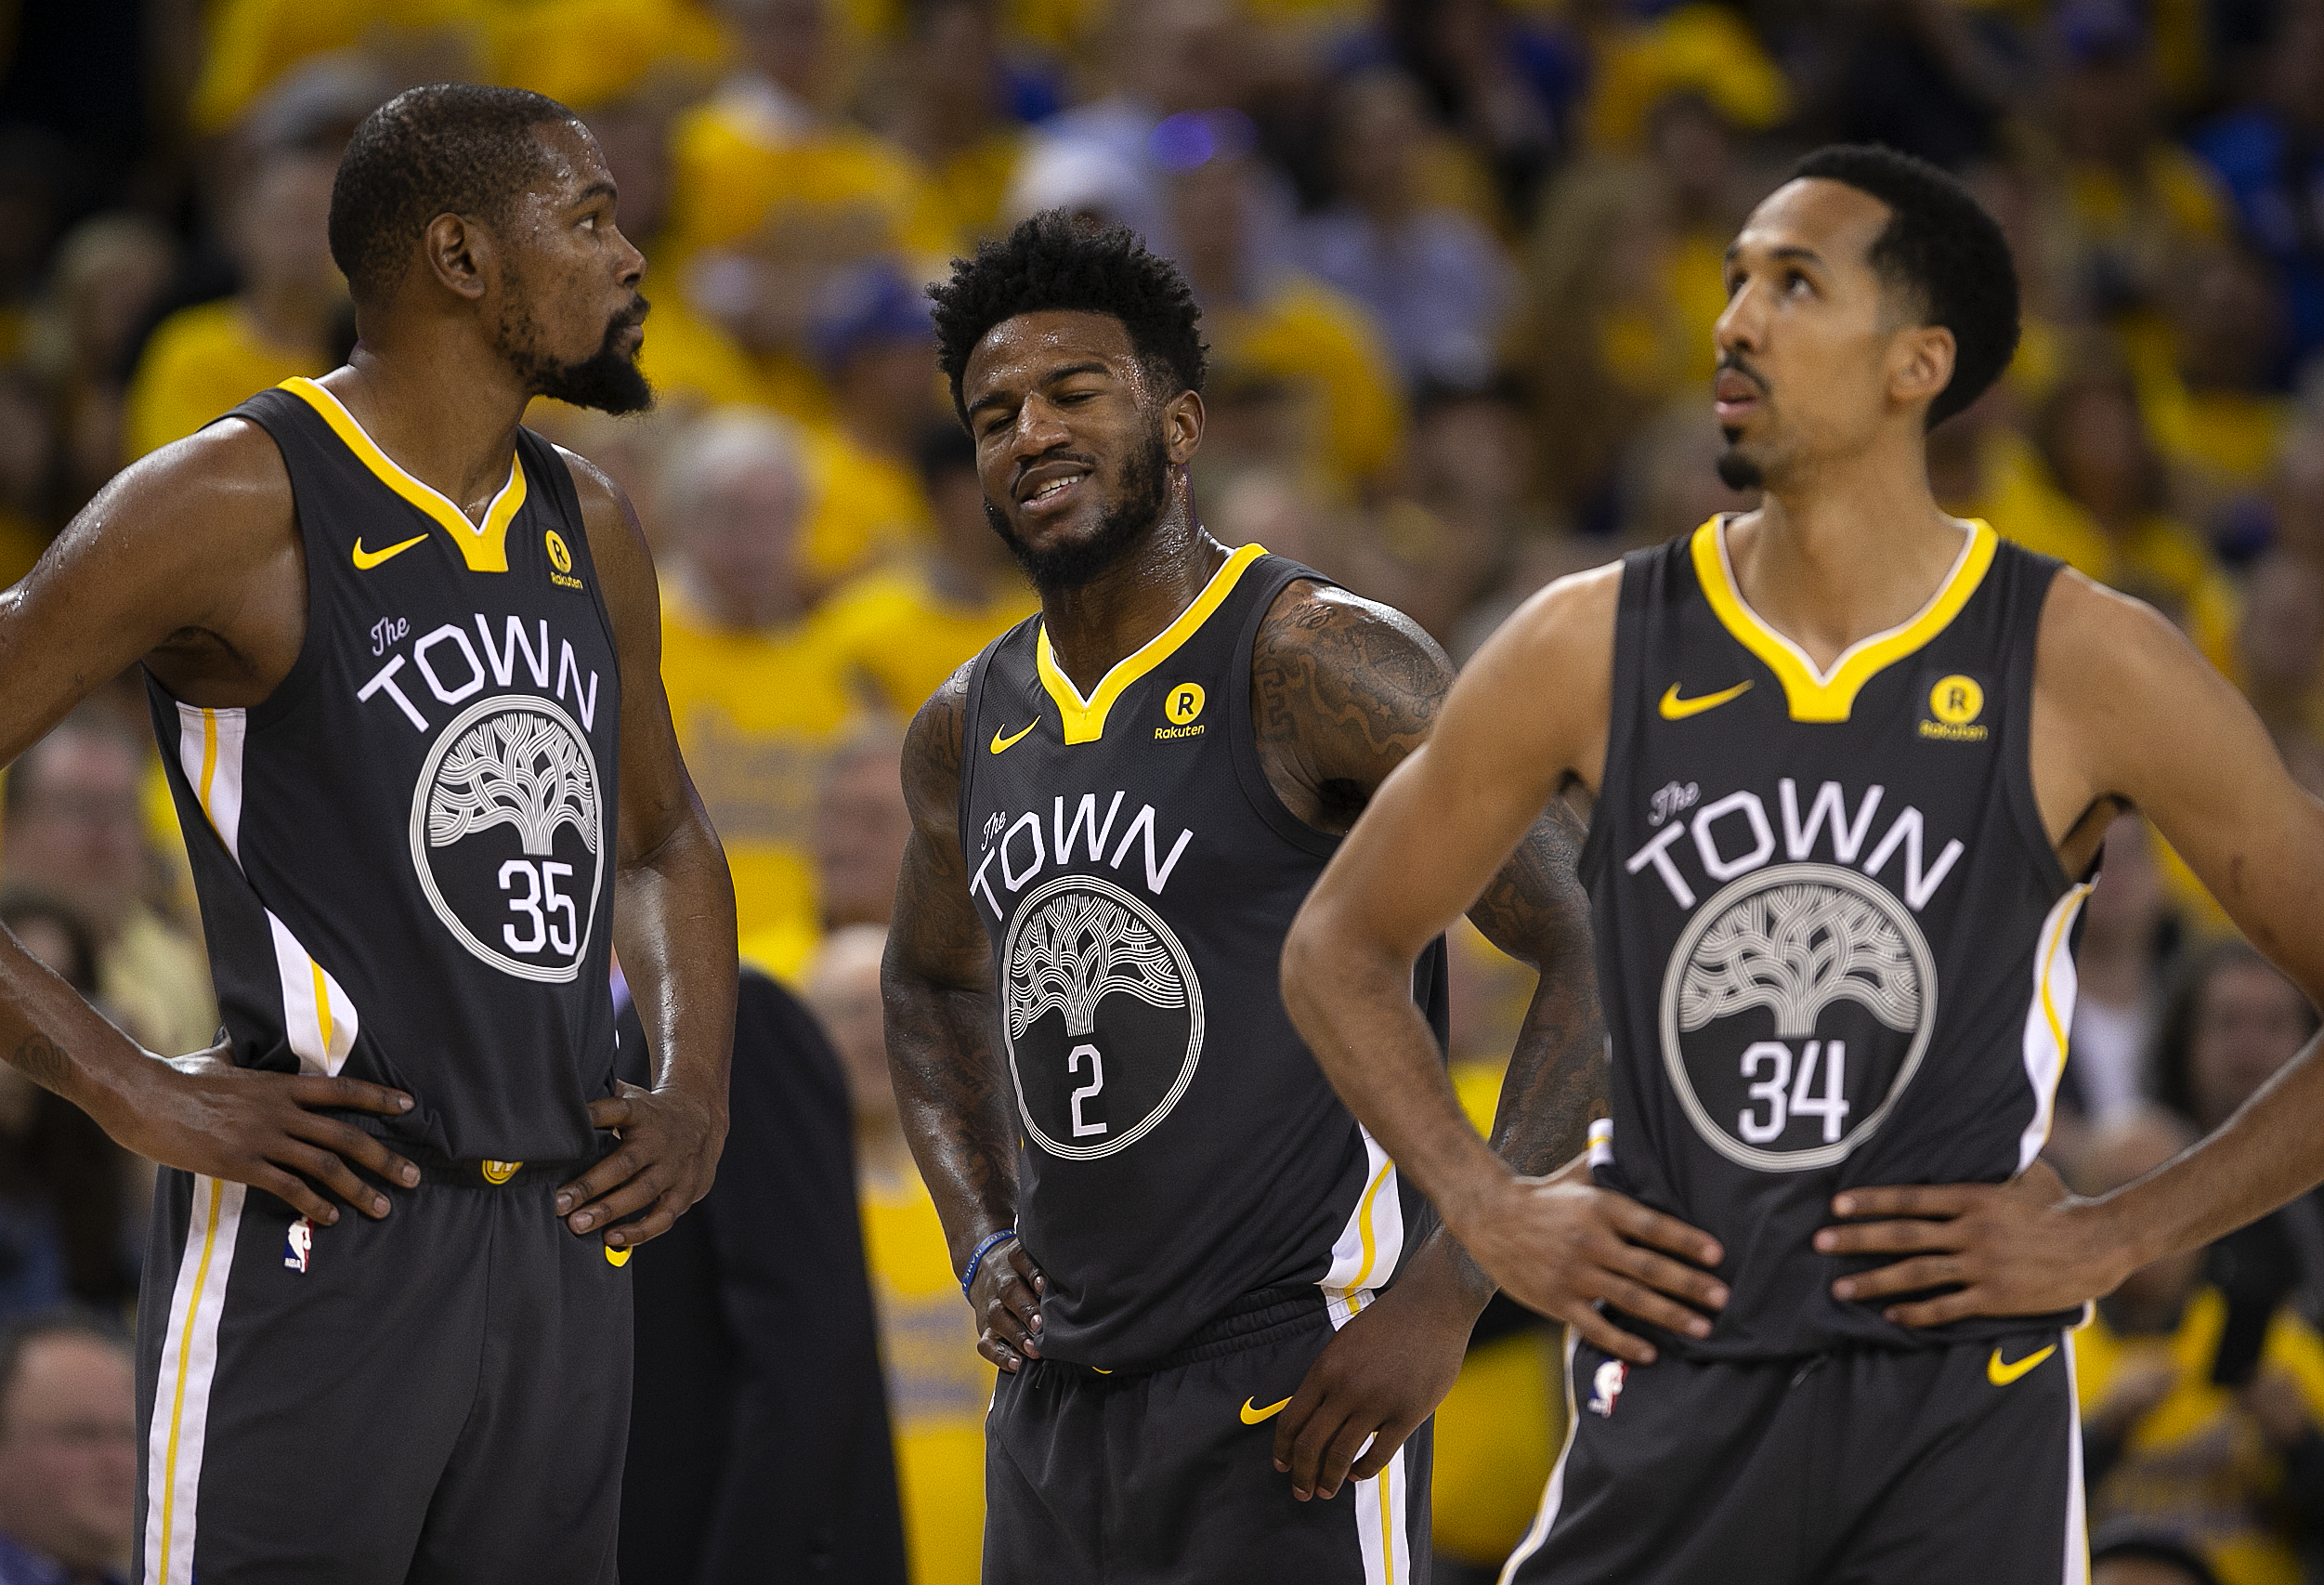 Ten lingering thoughts: Game 3 of the 2018 NBA Finals